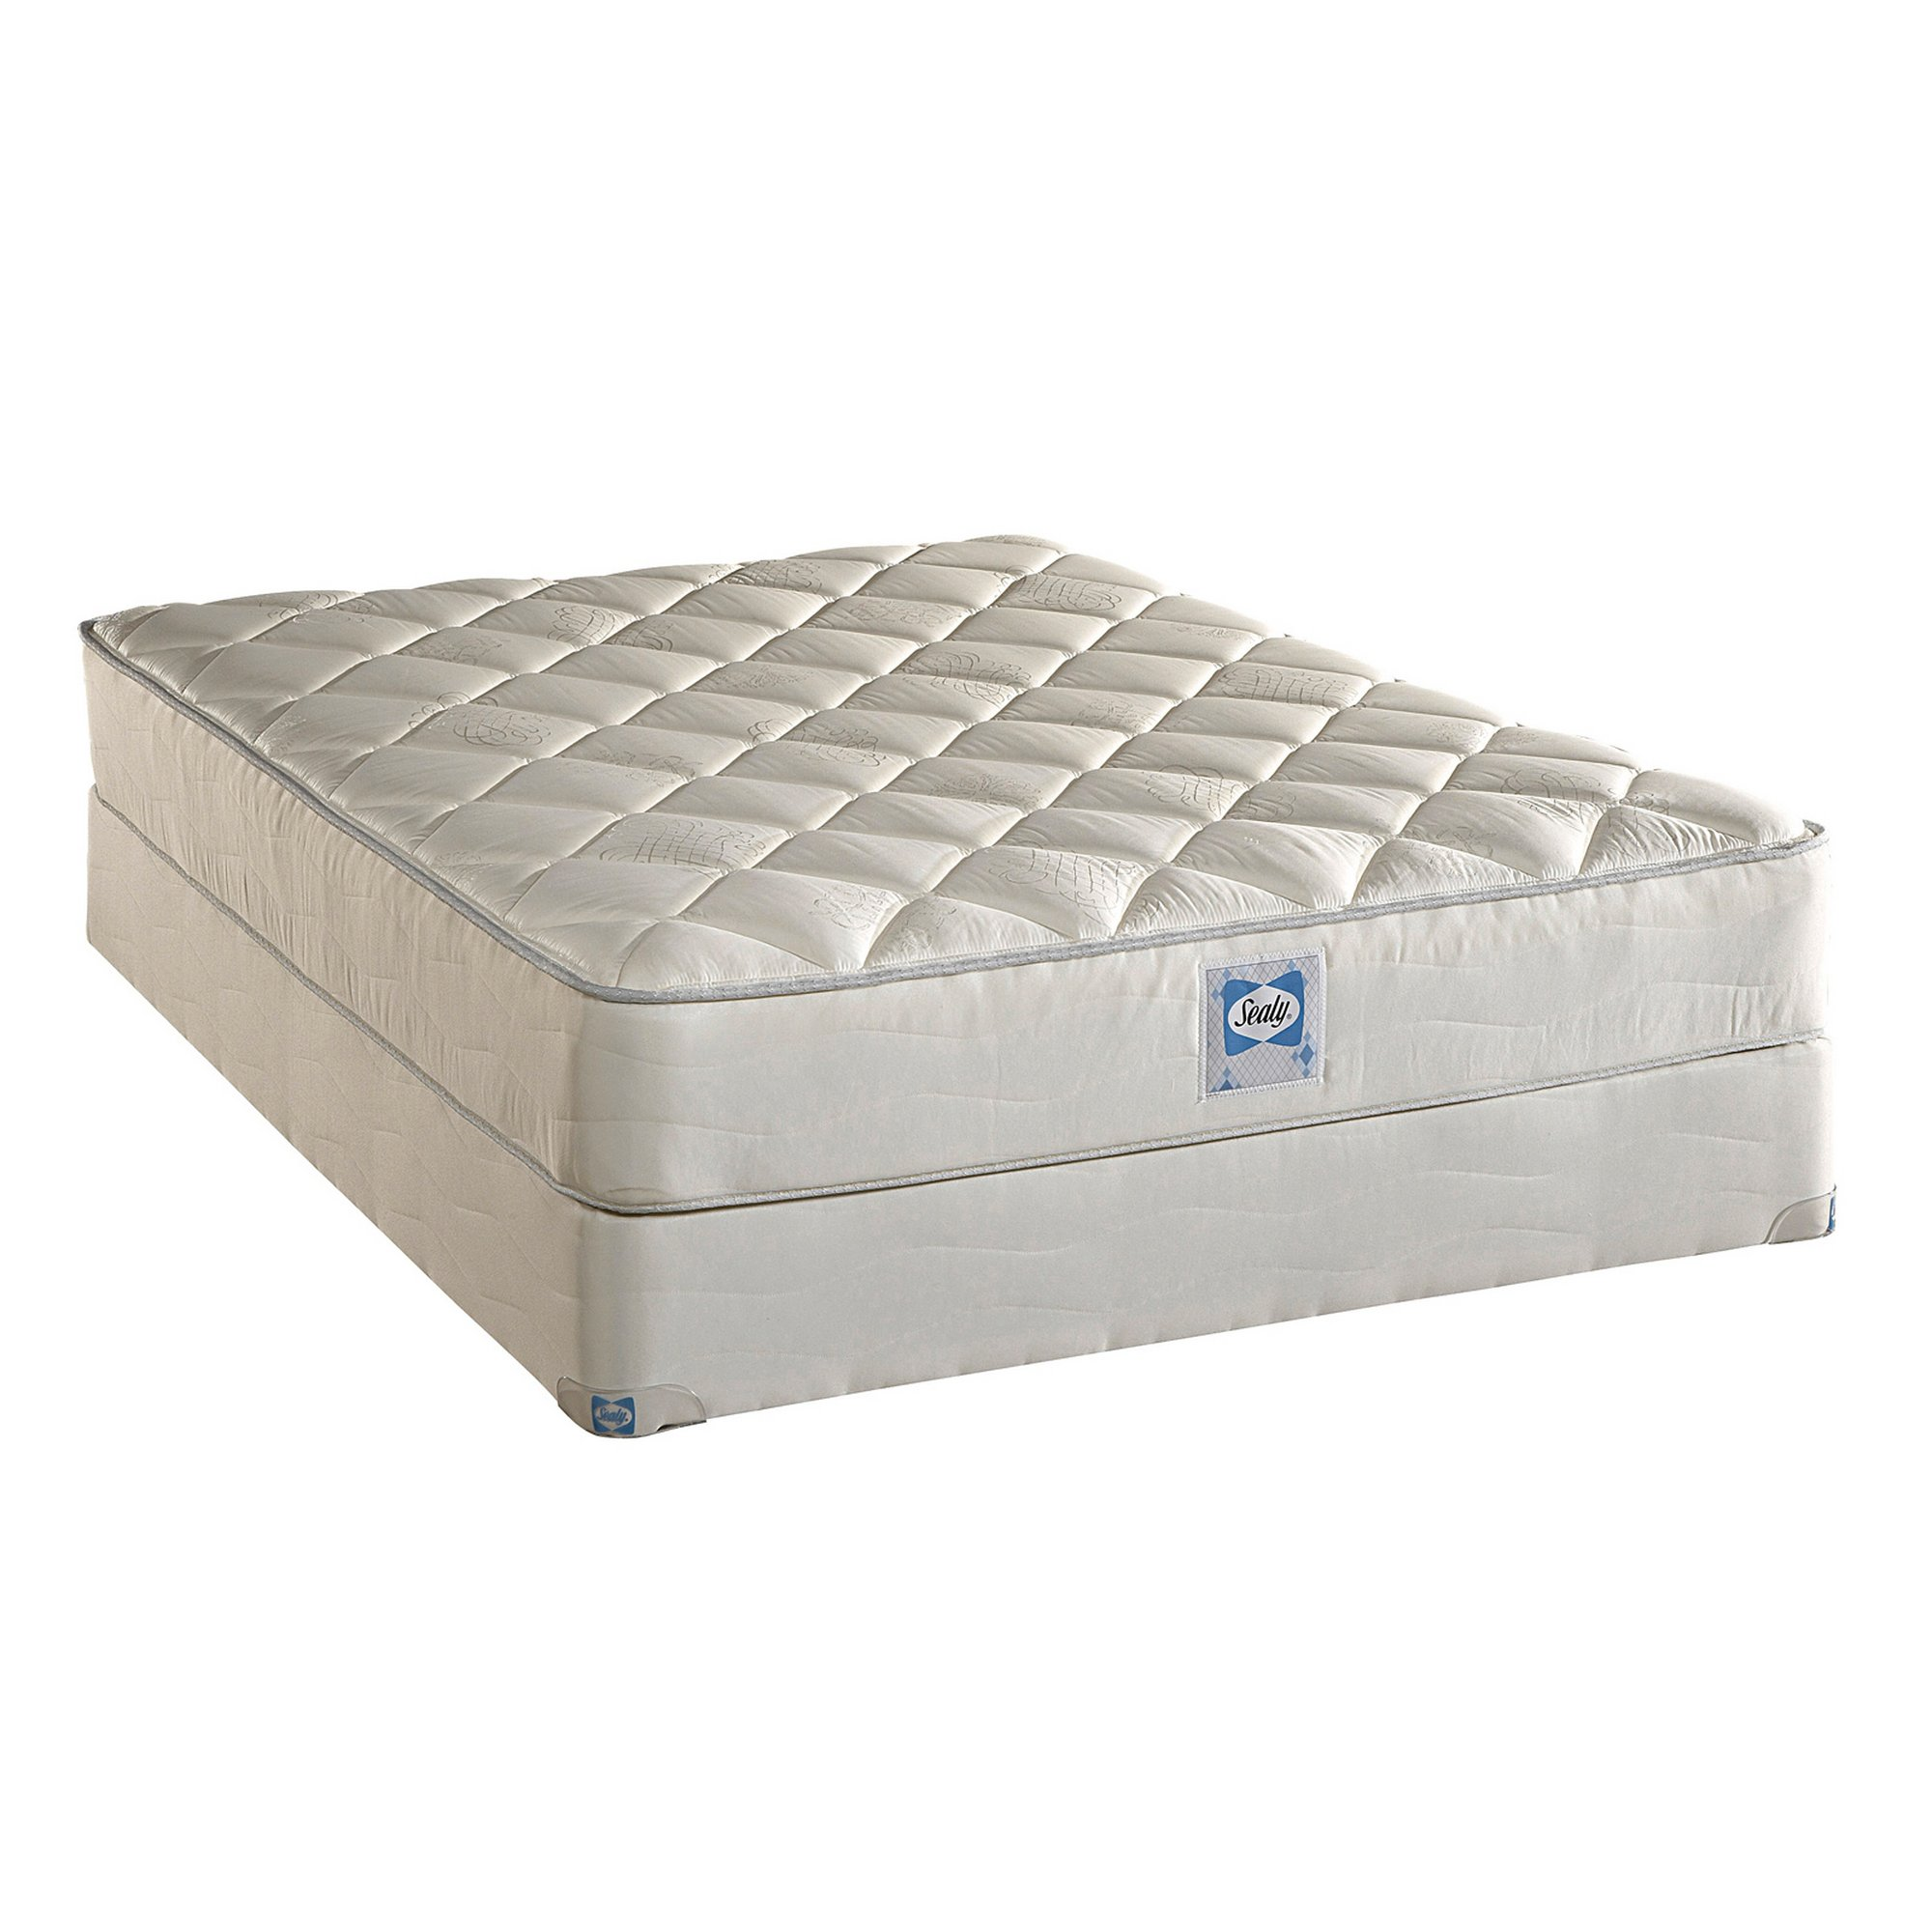 Http Www Sleeplikethedead Com Bed Mattress Review Home Html